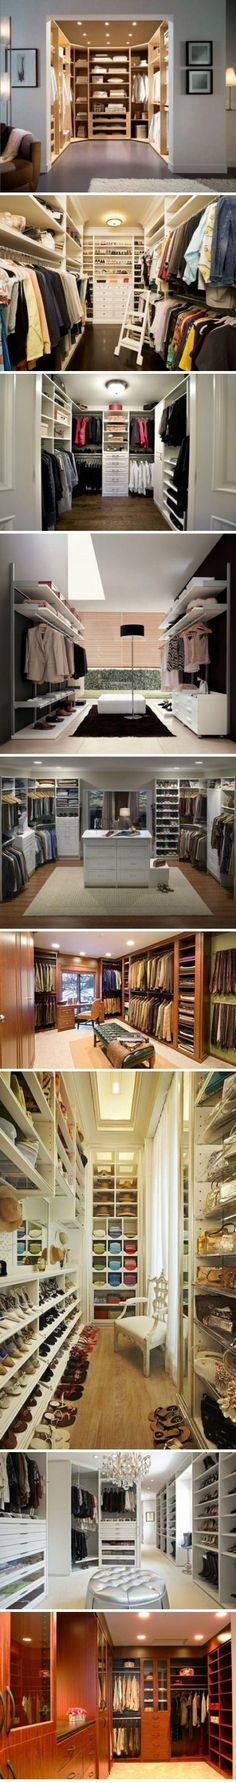 Walk-in closet design Walk In Wardrobe, Walk In Closet, Master Closet, Closet Space, Master Suite, Closet Mirror, Huge Closet, Ideas De Closets, Closet Ideas